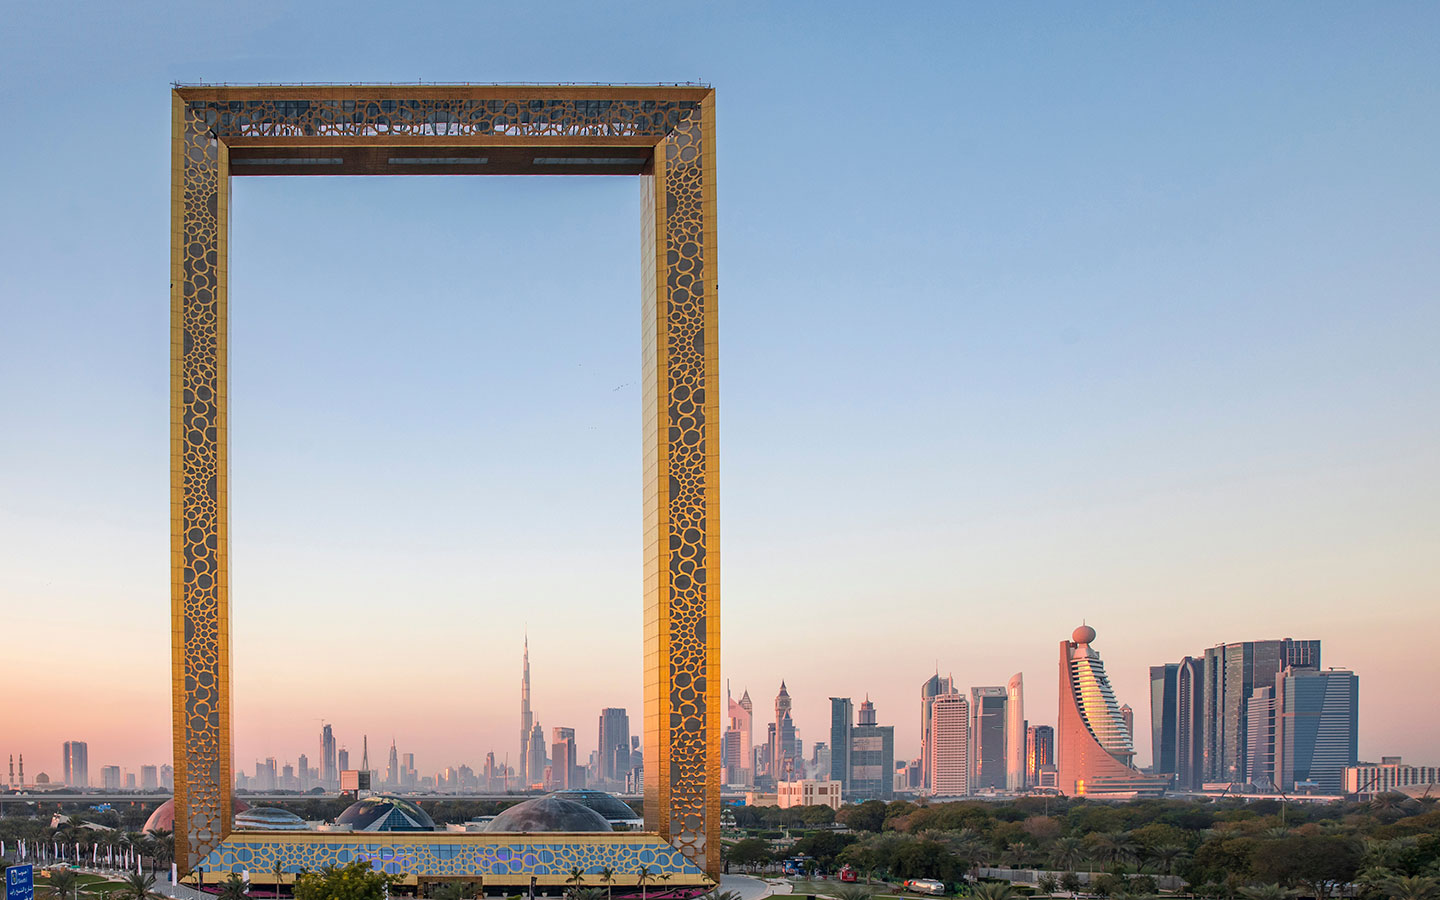 One of the most talked about places to visit in Dubai is the fantastic Dubai Frame.